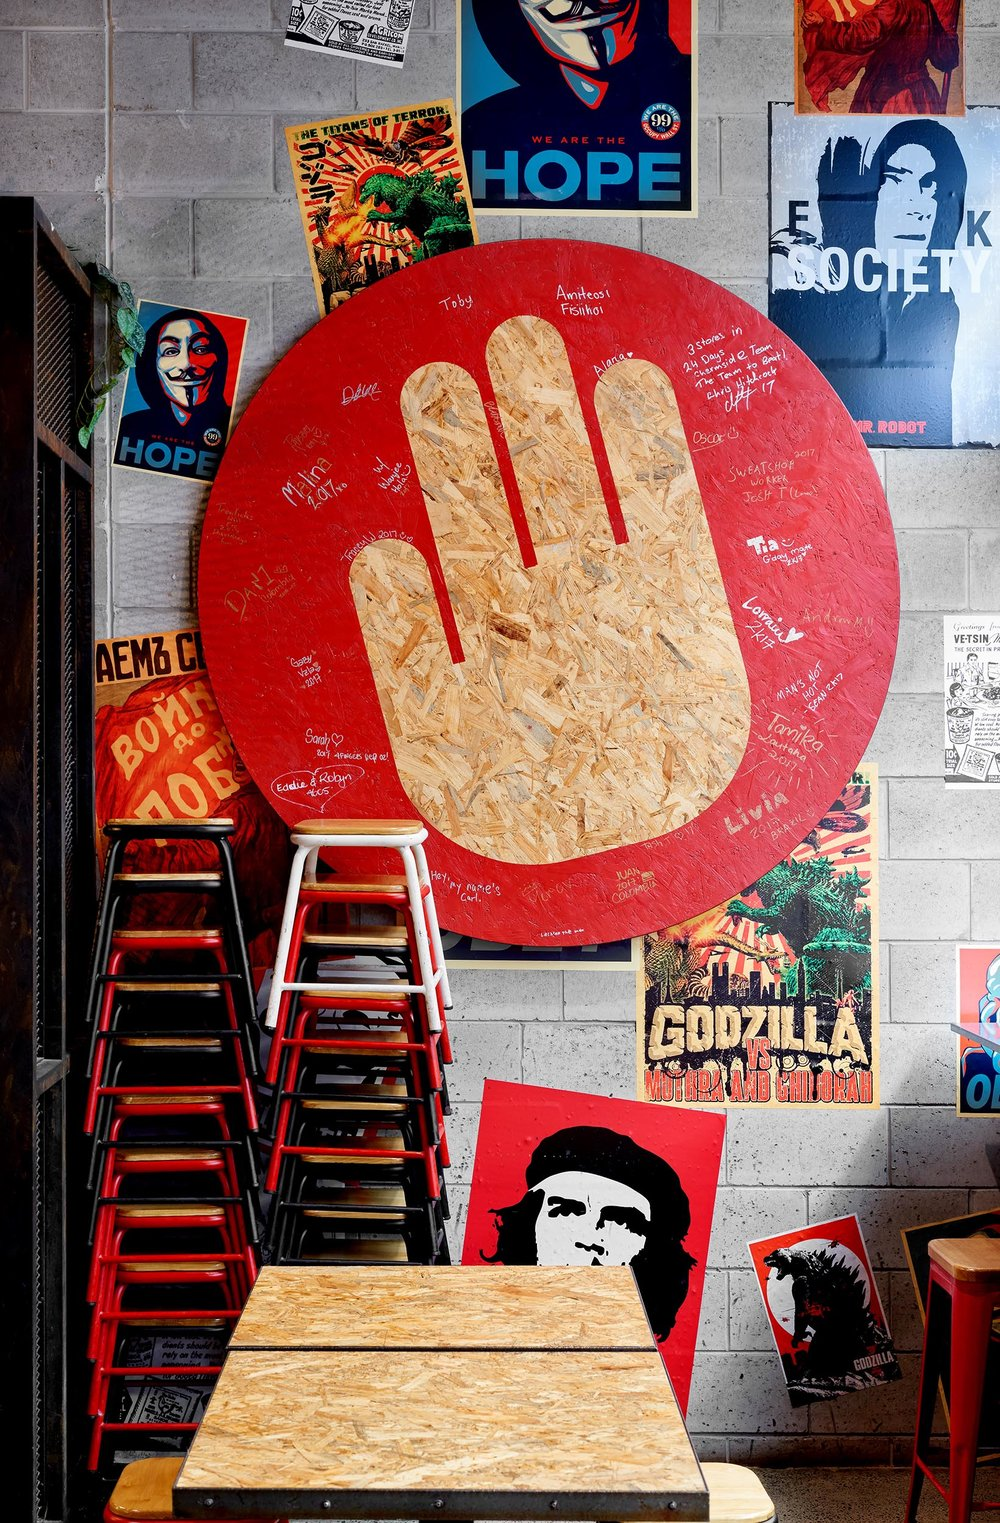 Four Fingers Interior Architecture Details 2 - Brisbane Advertising Photography, Brisbane Commercial Photography.jpg